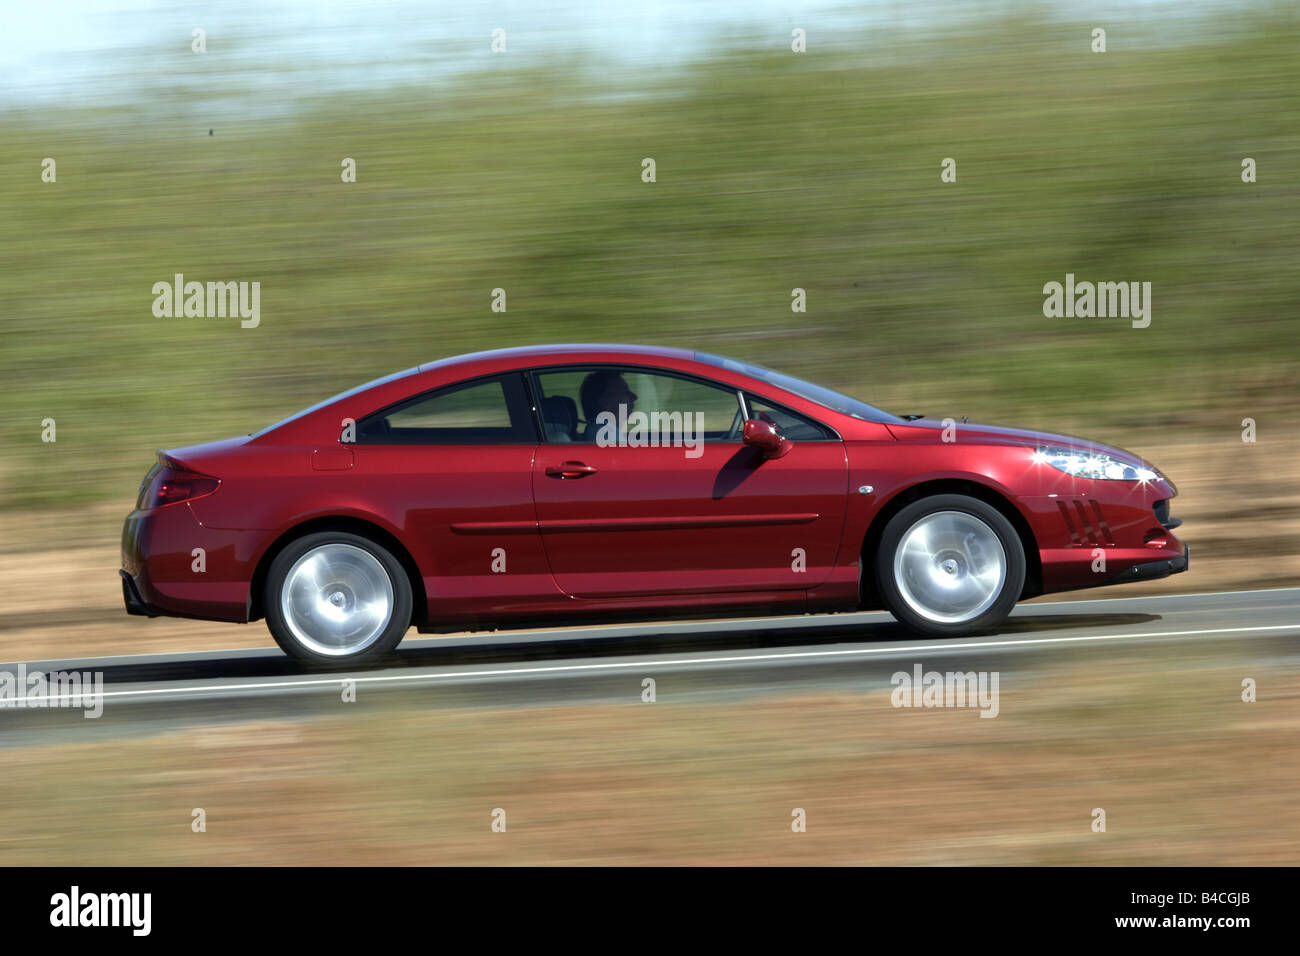 Peugeot 407 Coupe V6 210, model year 2005-, red, driving, side view, country road - Stock Image